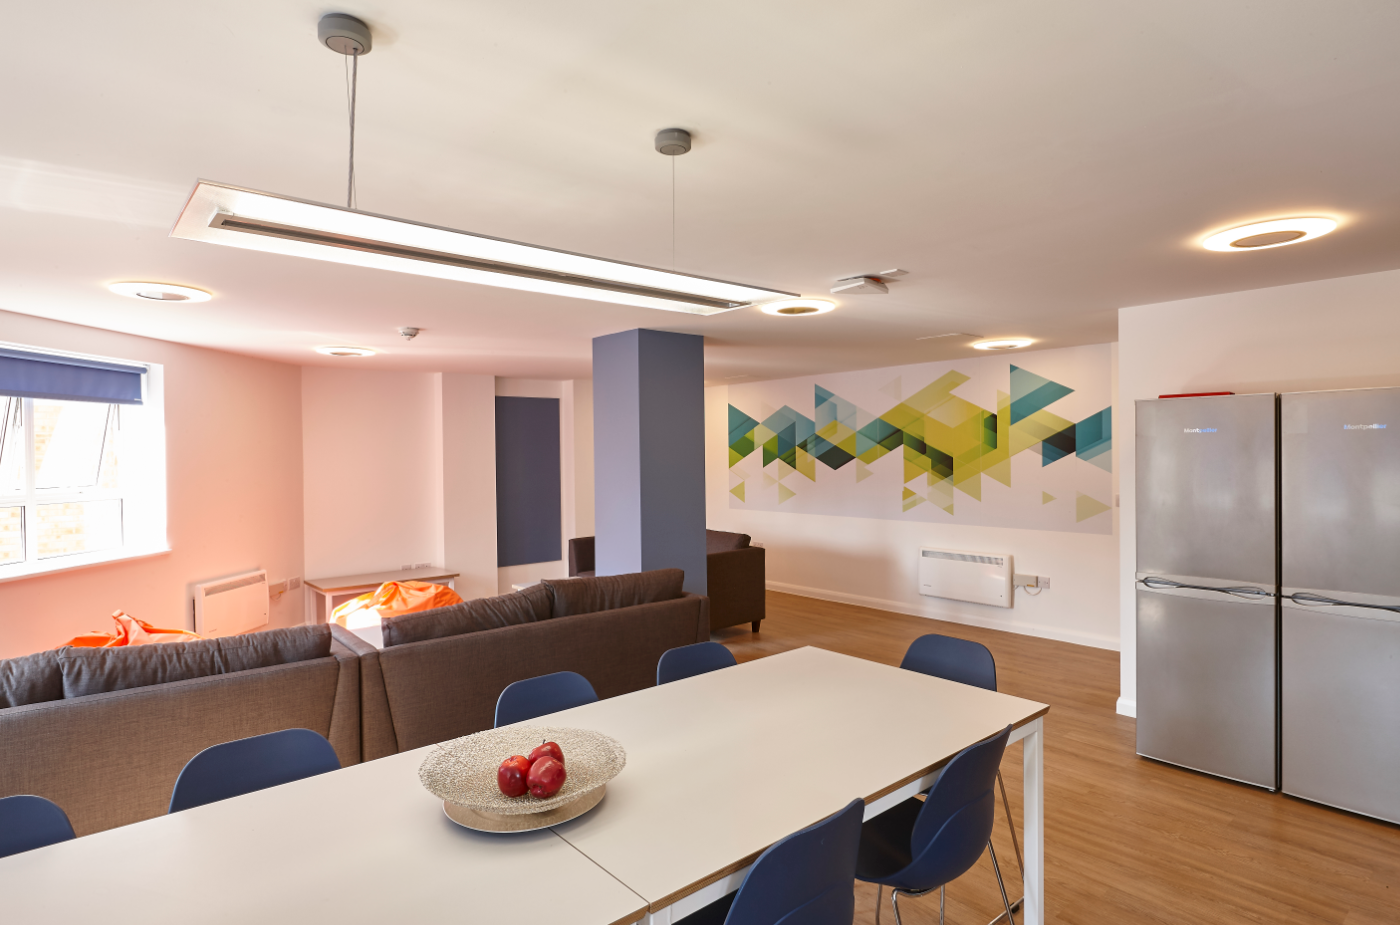 Lovely Throughout Our Numerous 2016 Student Accommodation Projects, We Have  Witnessed The Beginning Of Some Strong Bedroom And Kitchen Trends,  Fulfilling The High ...